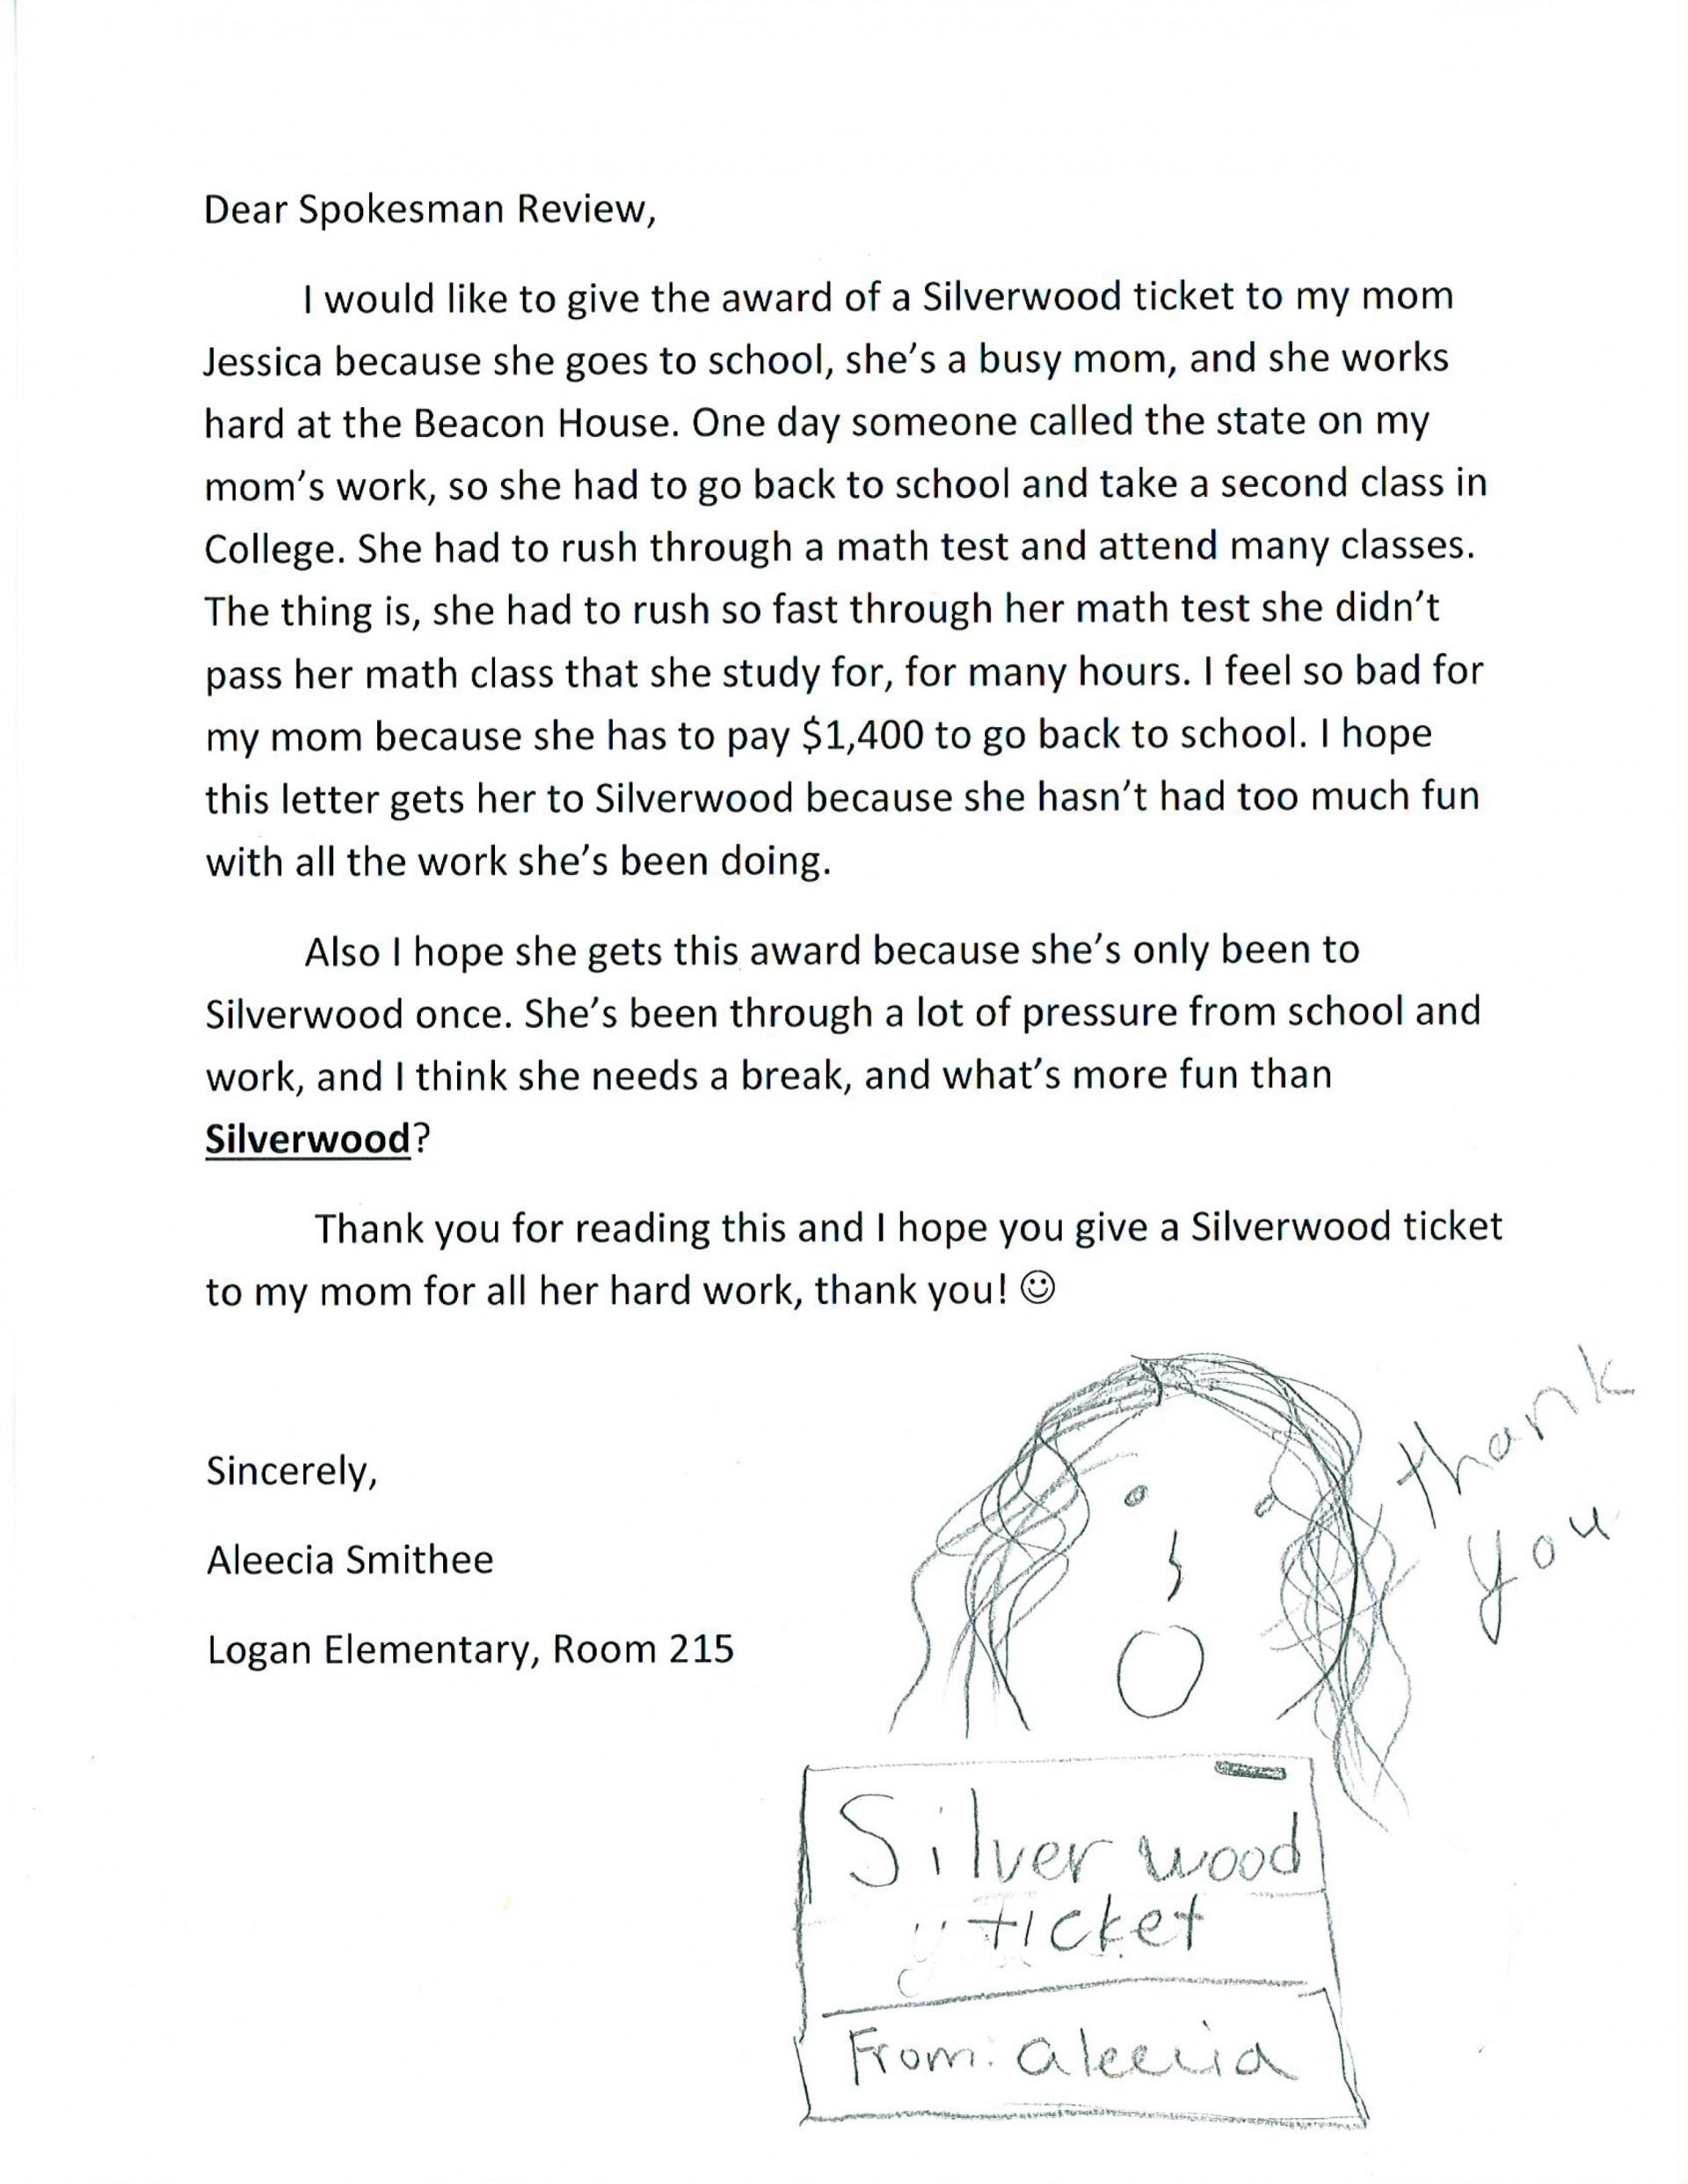 023 Essay Example Aleecia Rush Best Review My Reviews 1920